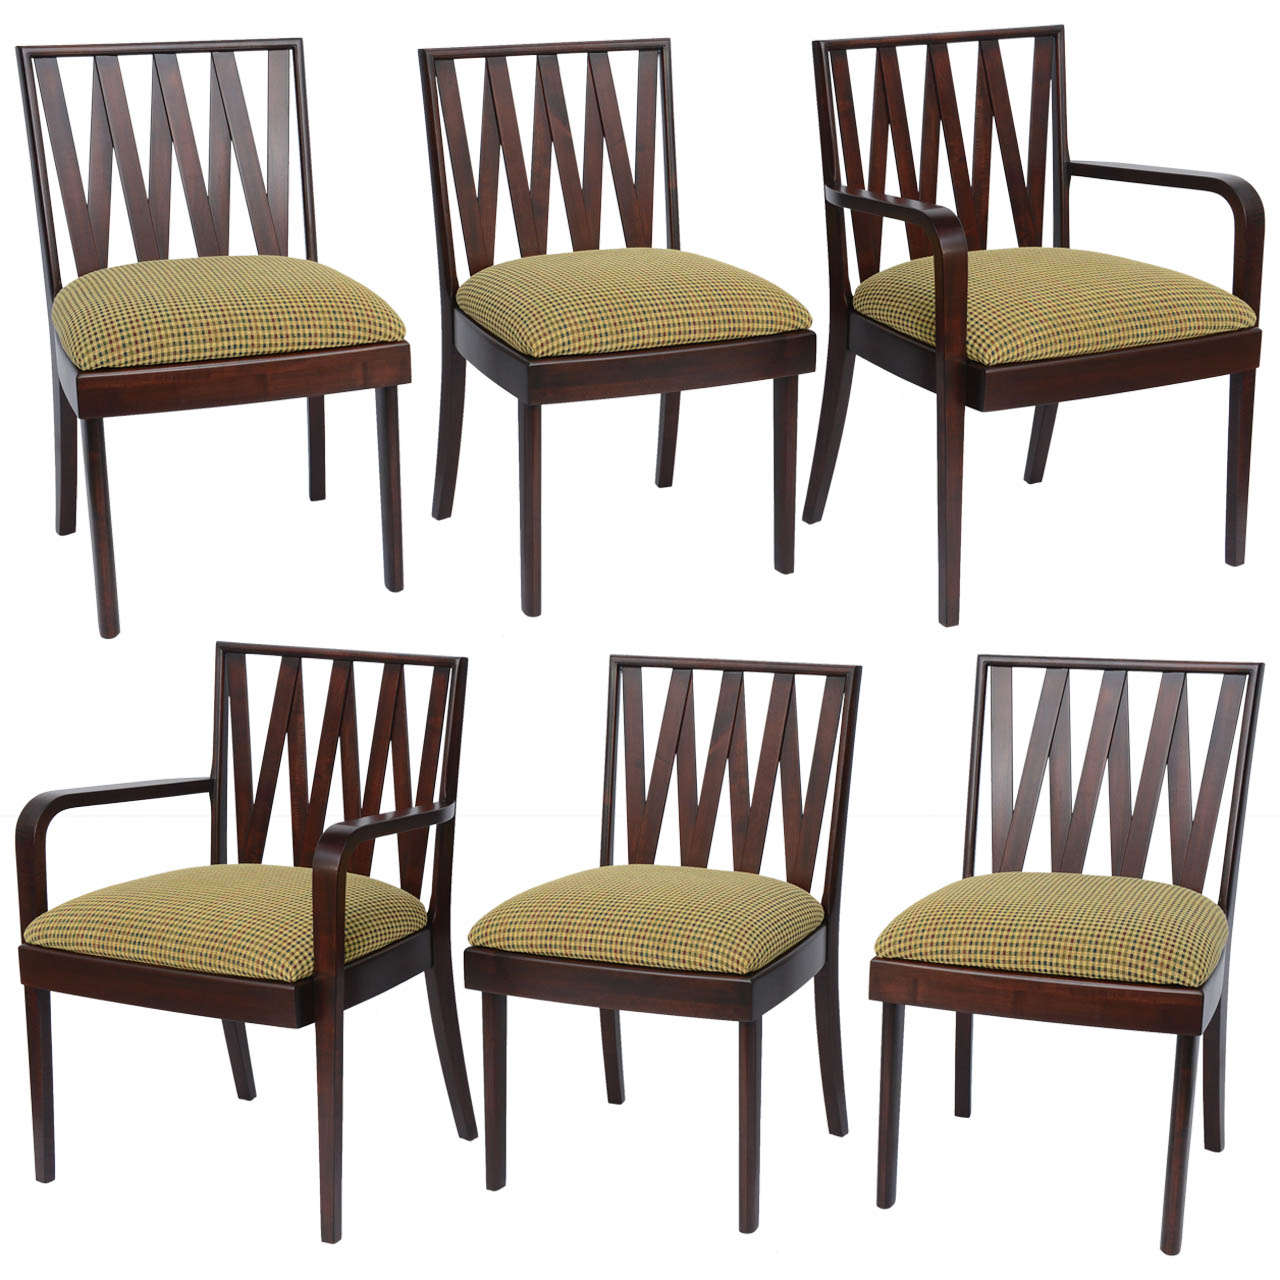 Classic 1940s Paul Frankl Dining Chairs For Johnson Furniture 1